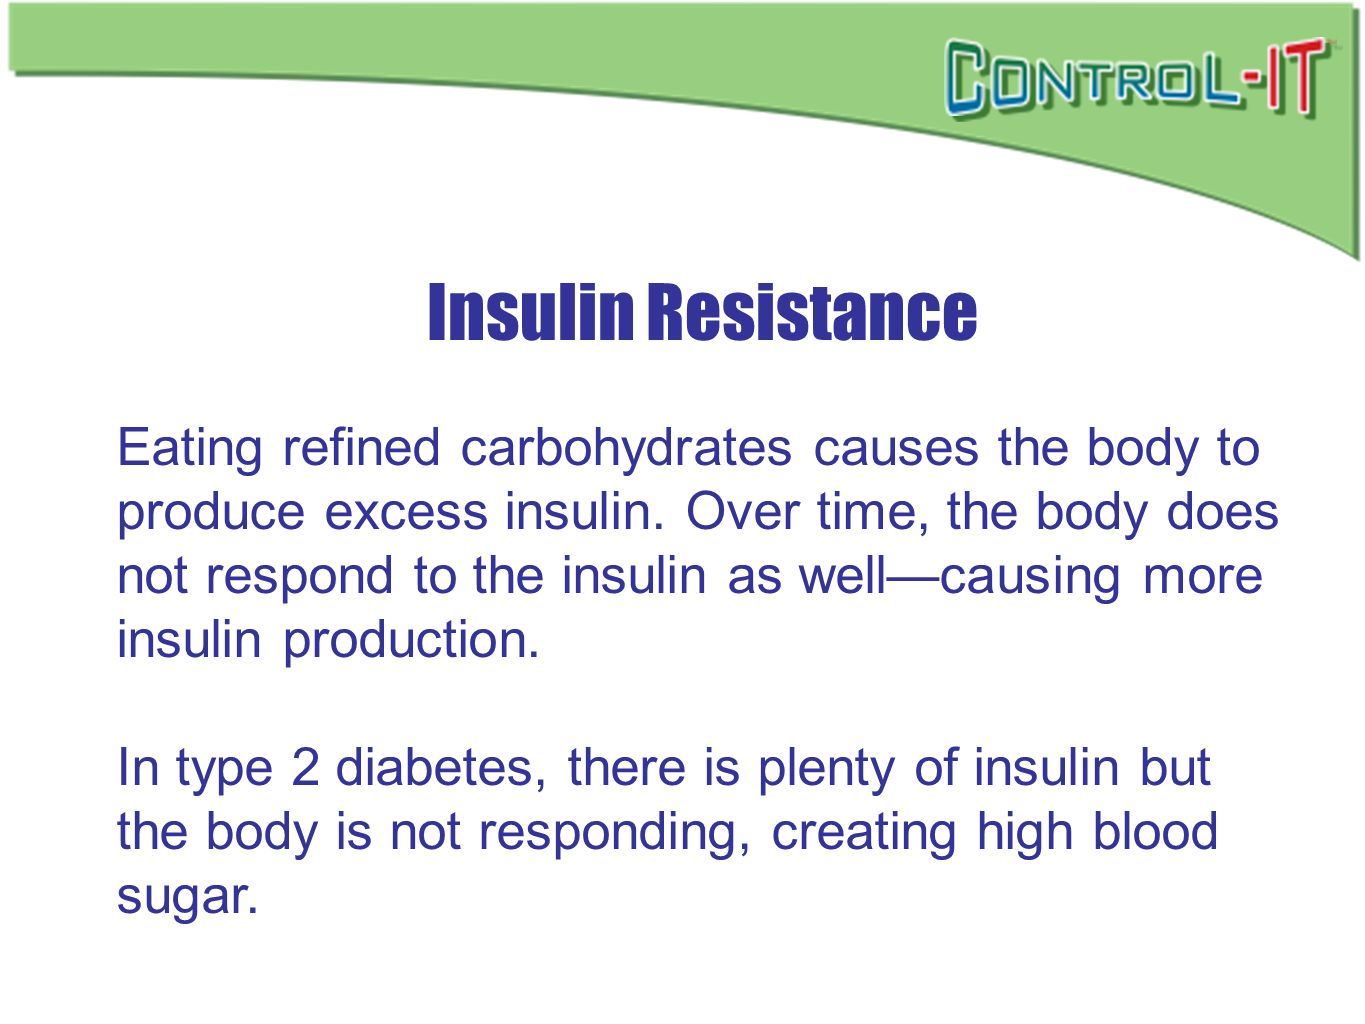 Insulin Resistance Eating refined carbohydrates causes the body to produce excess insulin. Over time, the body does not respond to the insulin as well